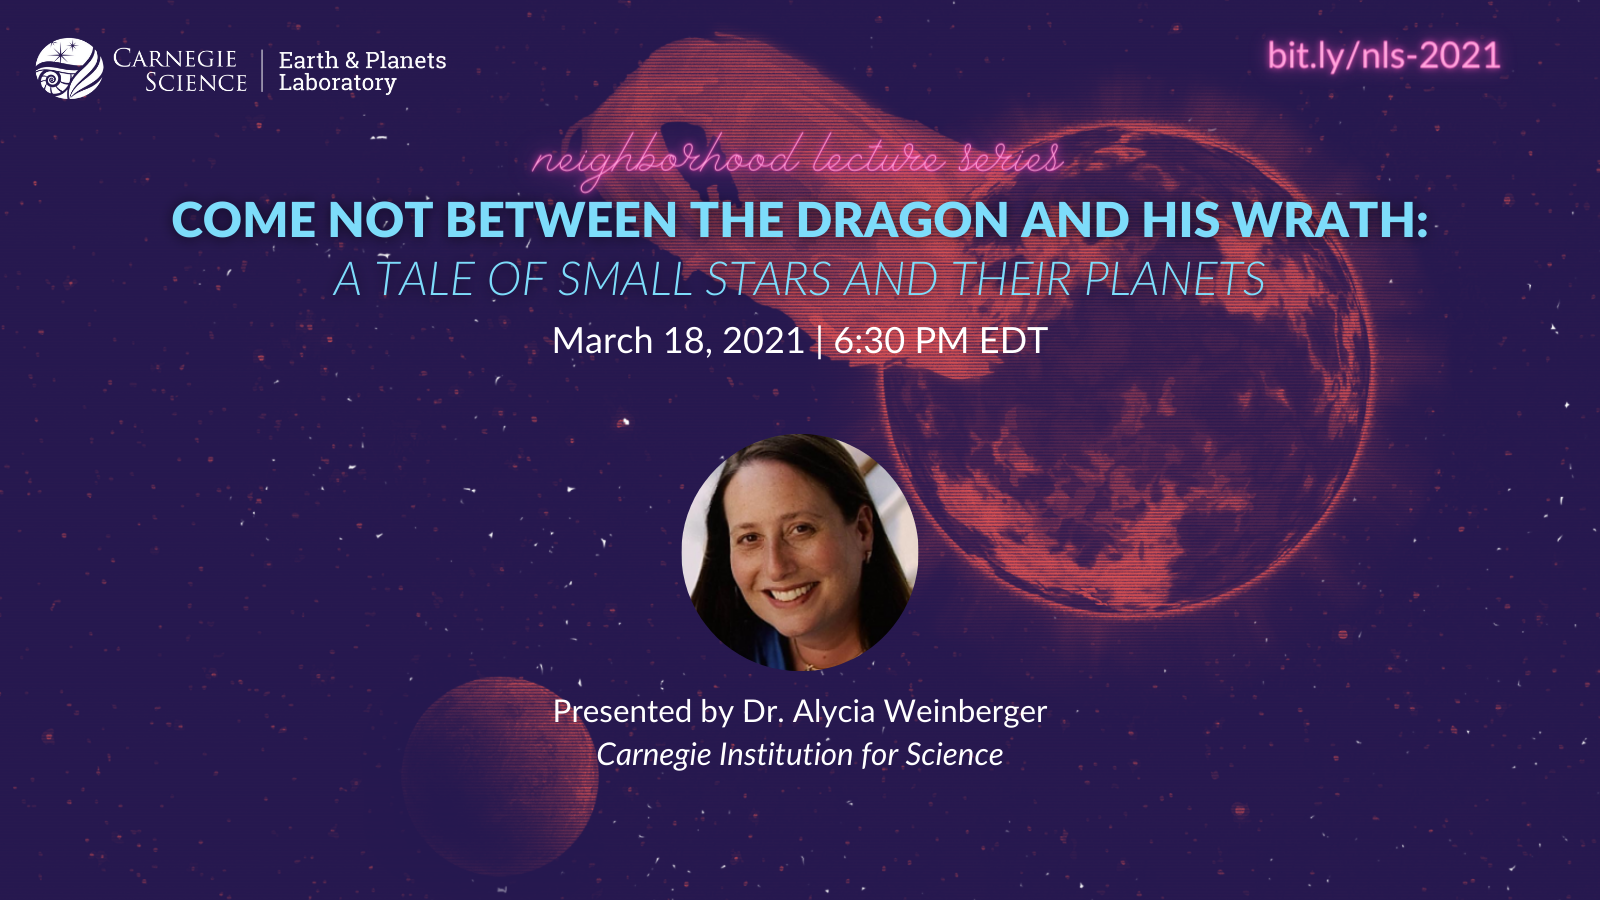 come not between a dragon and its wrath - alycia weinberger NLS